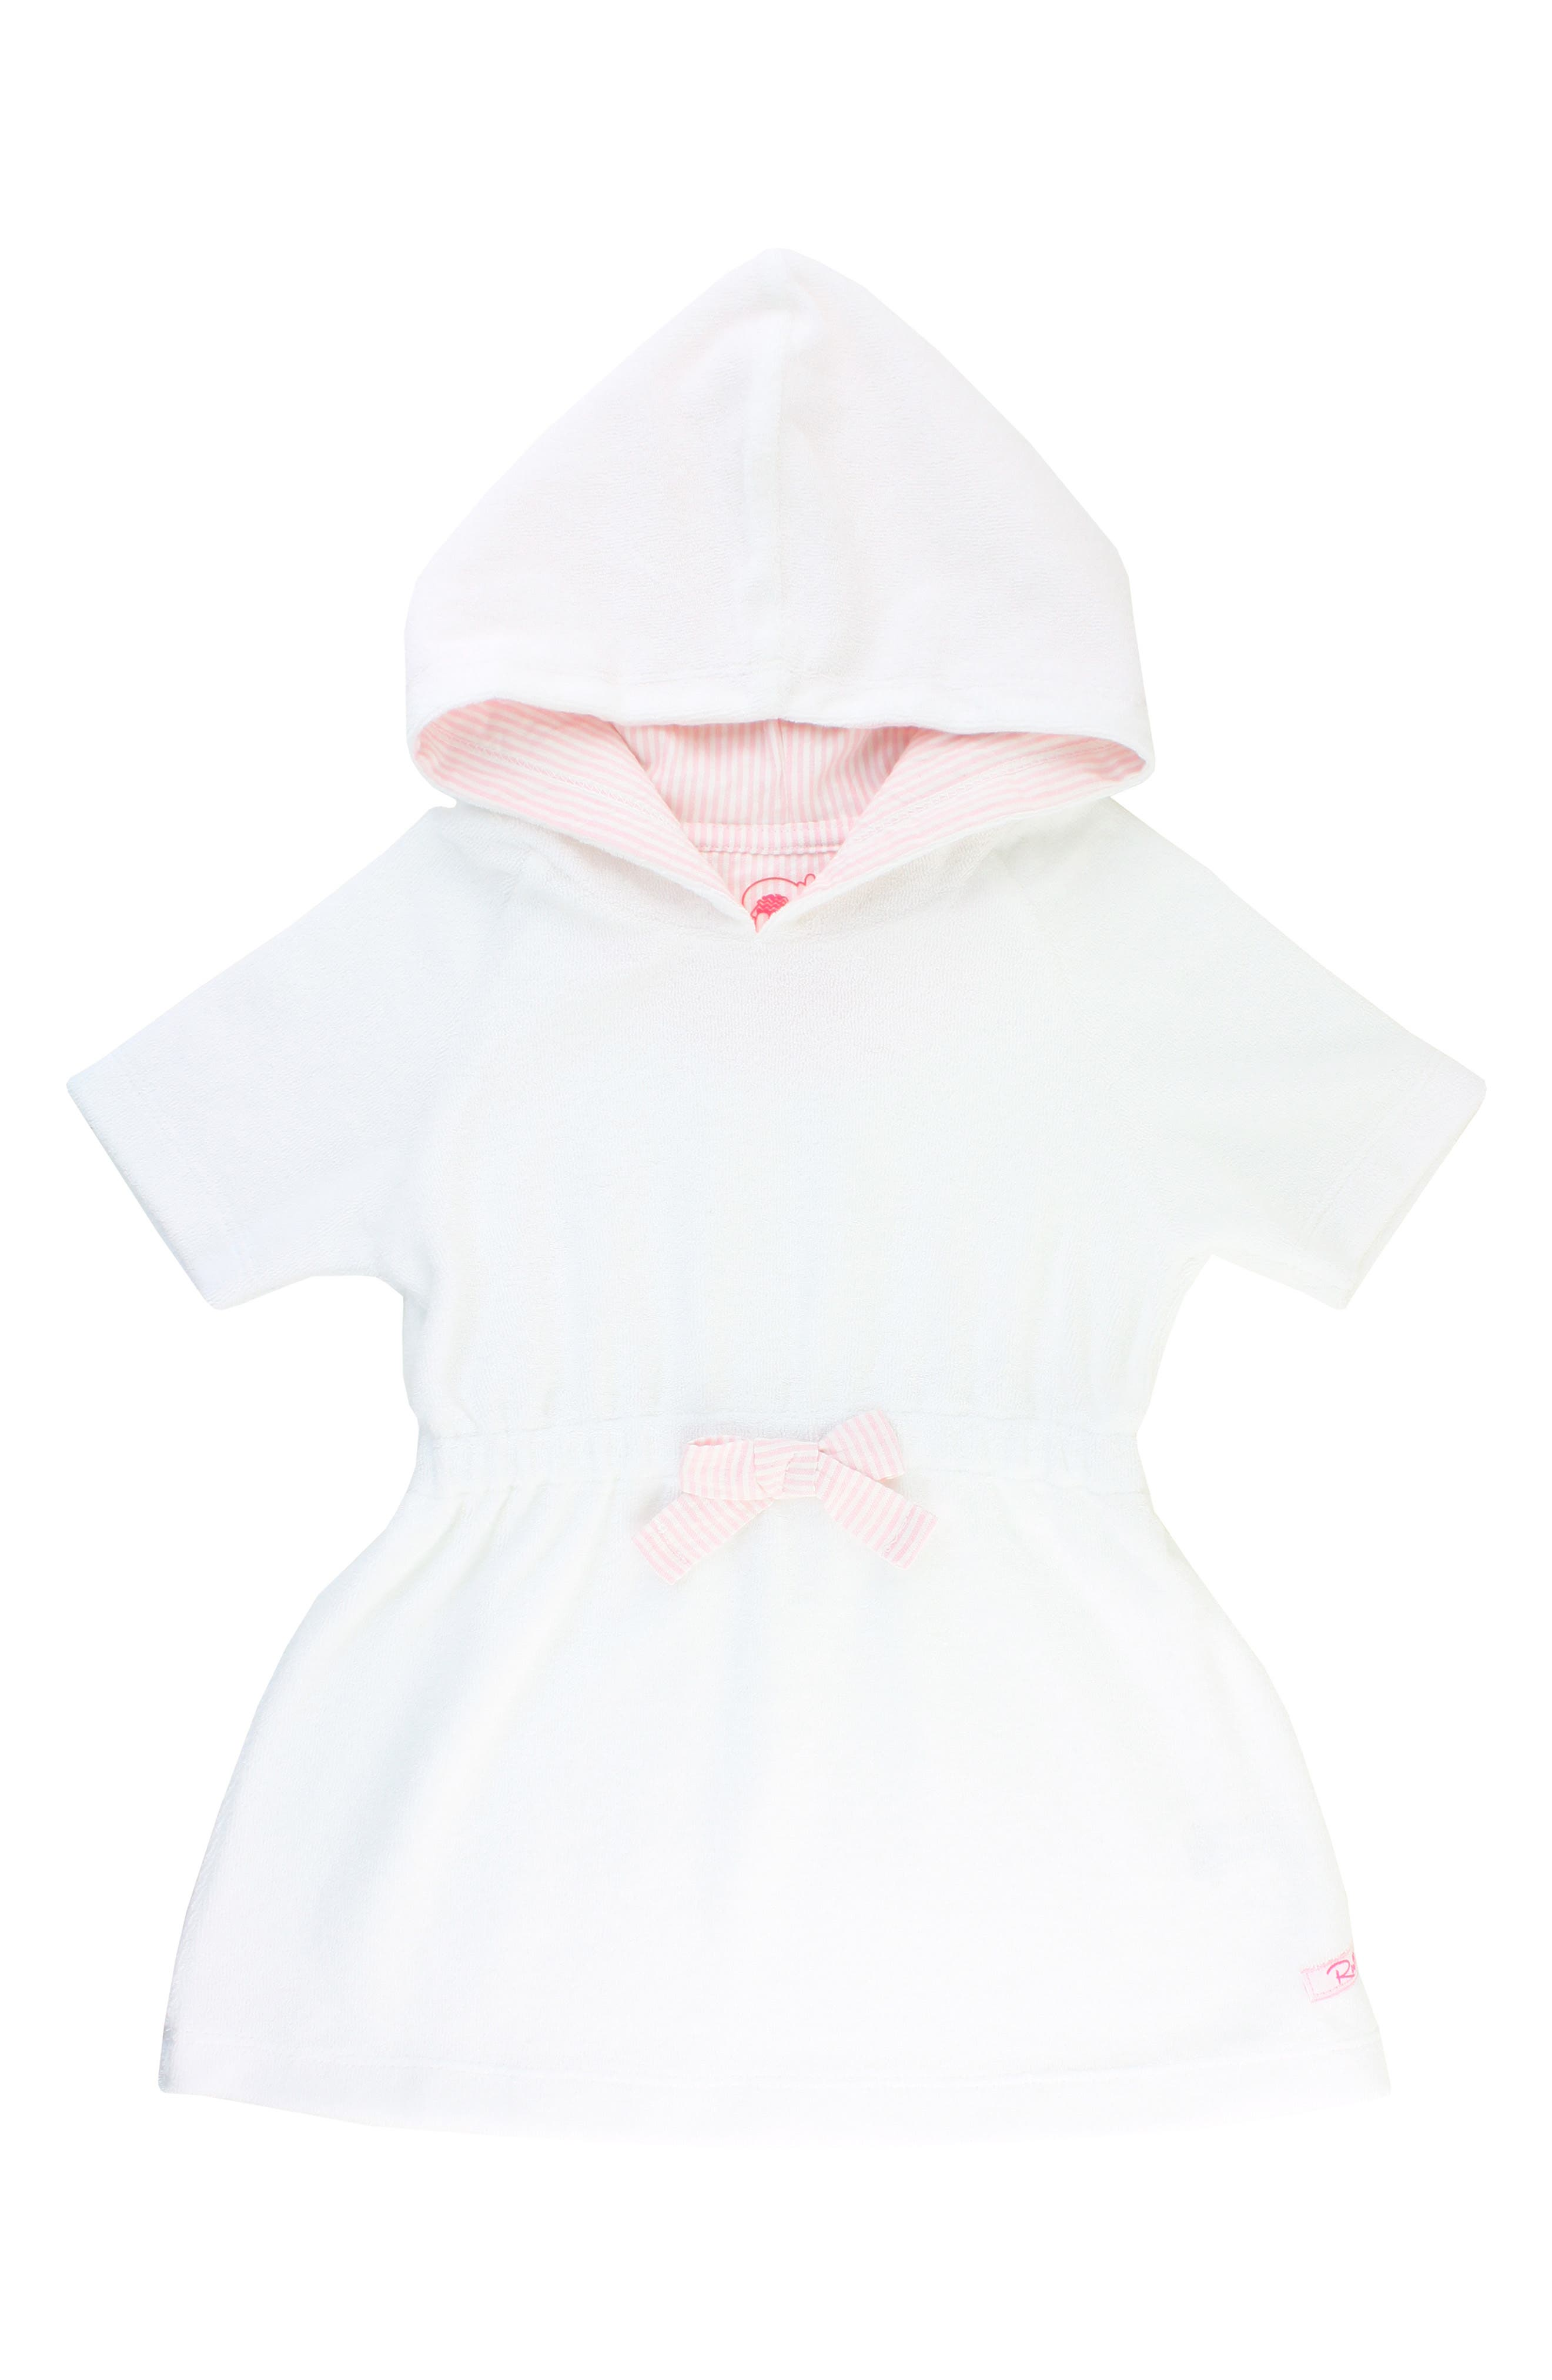 Infant Girls Rufflebutts French Terry Hooded CoverUp Dress Size 36M  White